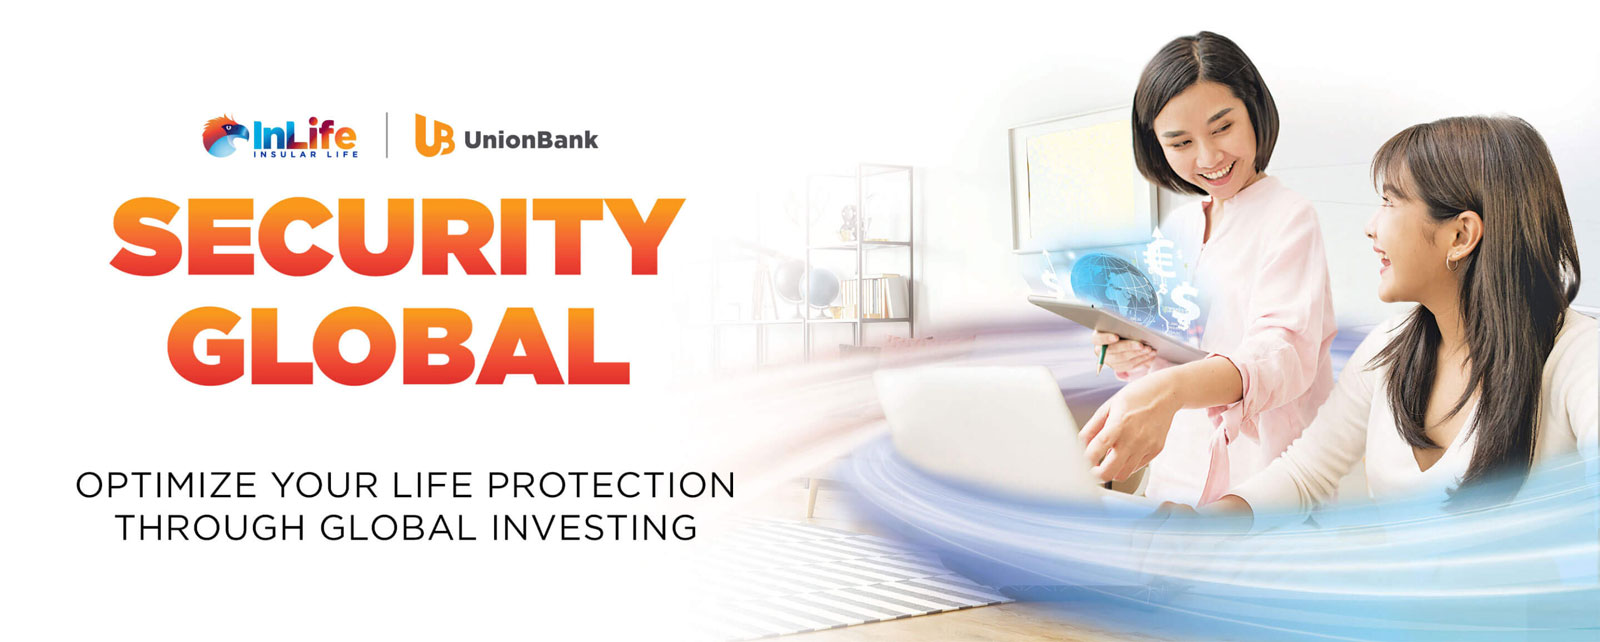 security global banner